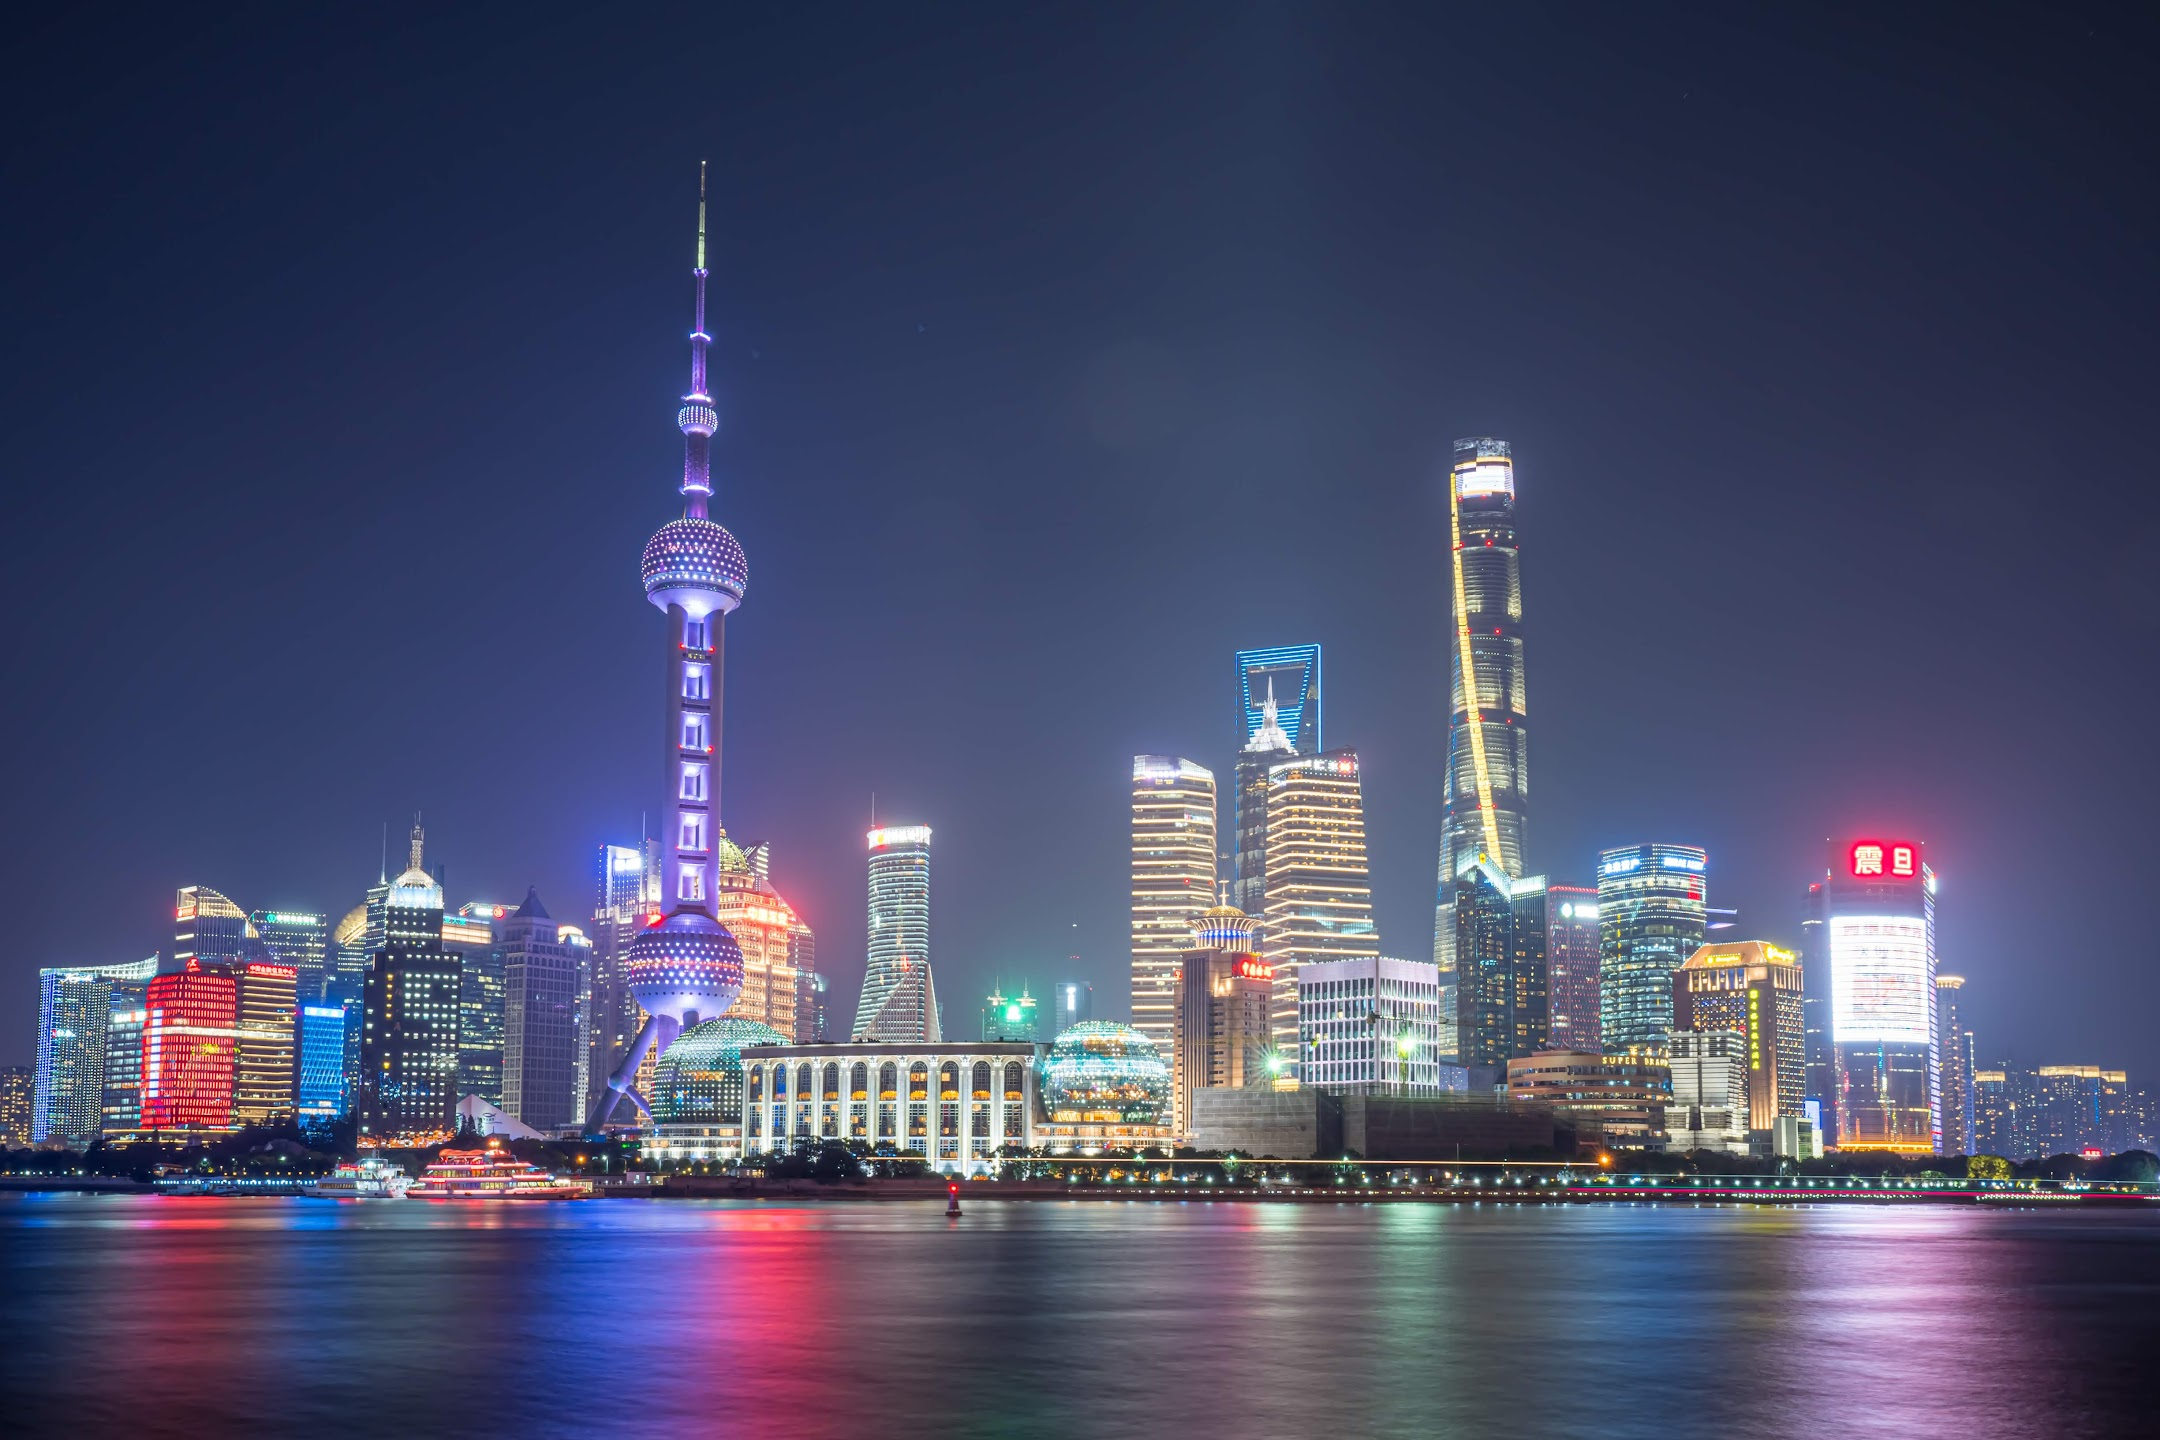 Shanghai Waitan (The Bund) Pudong evening1